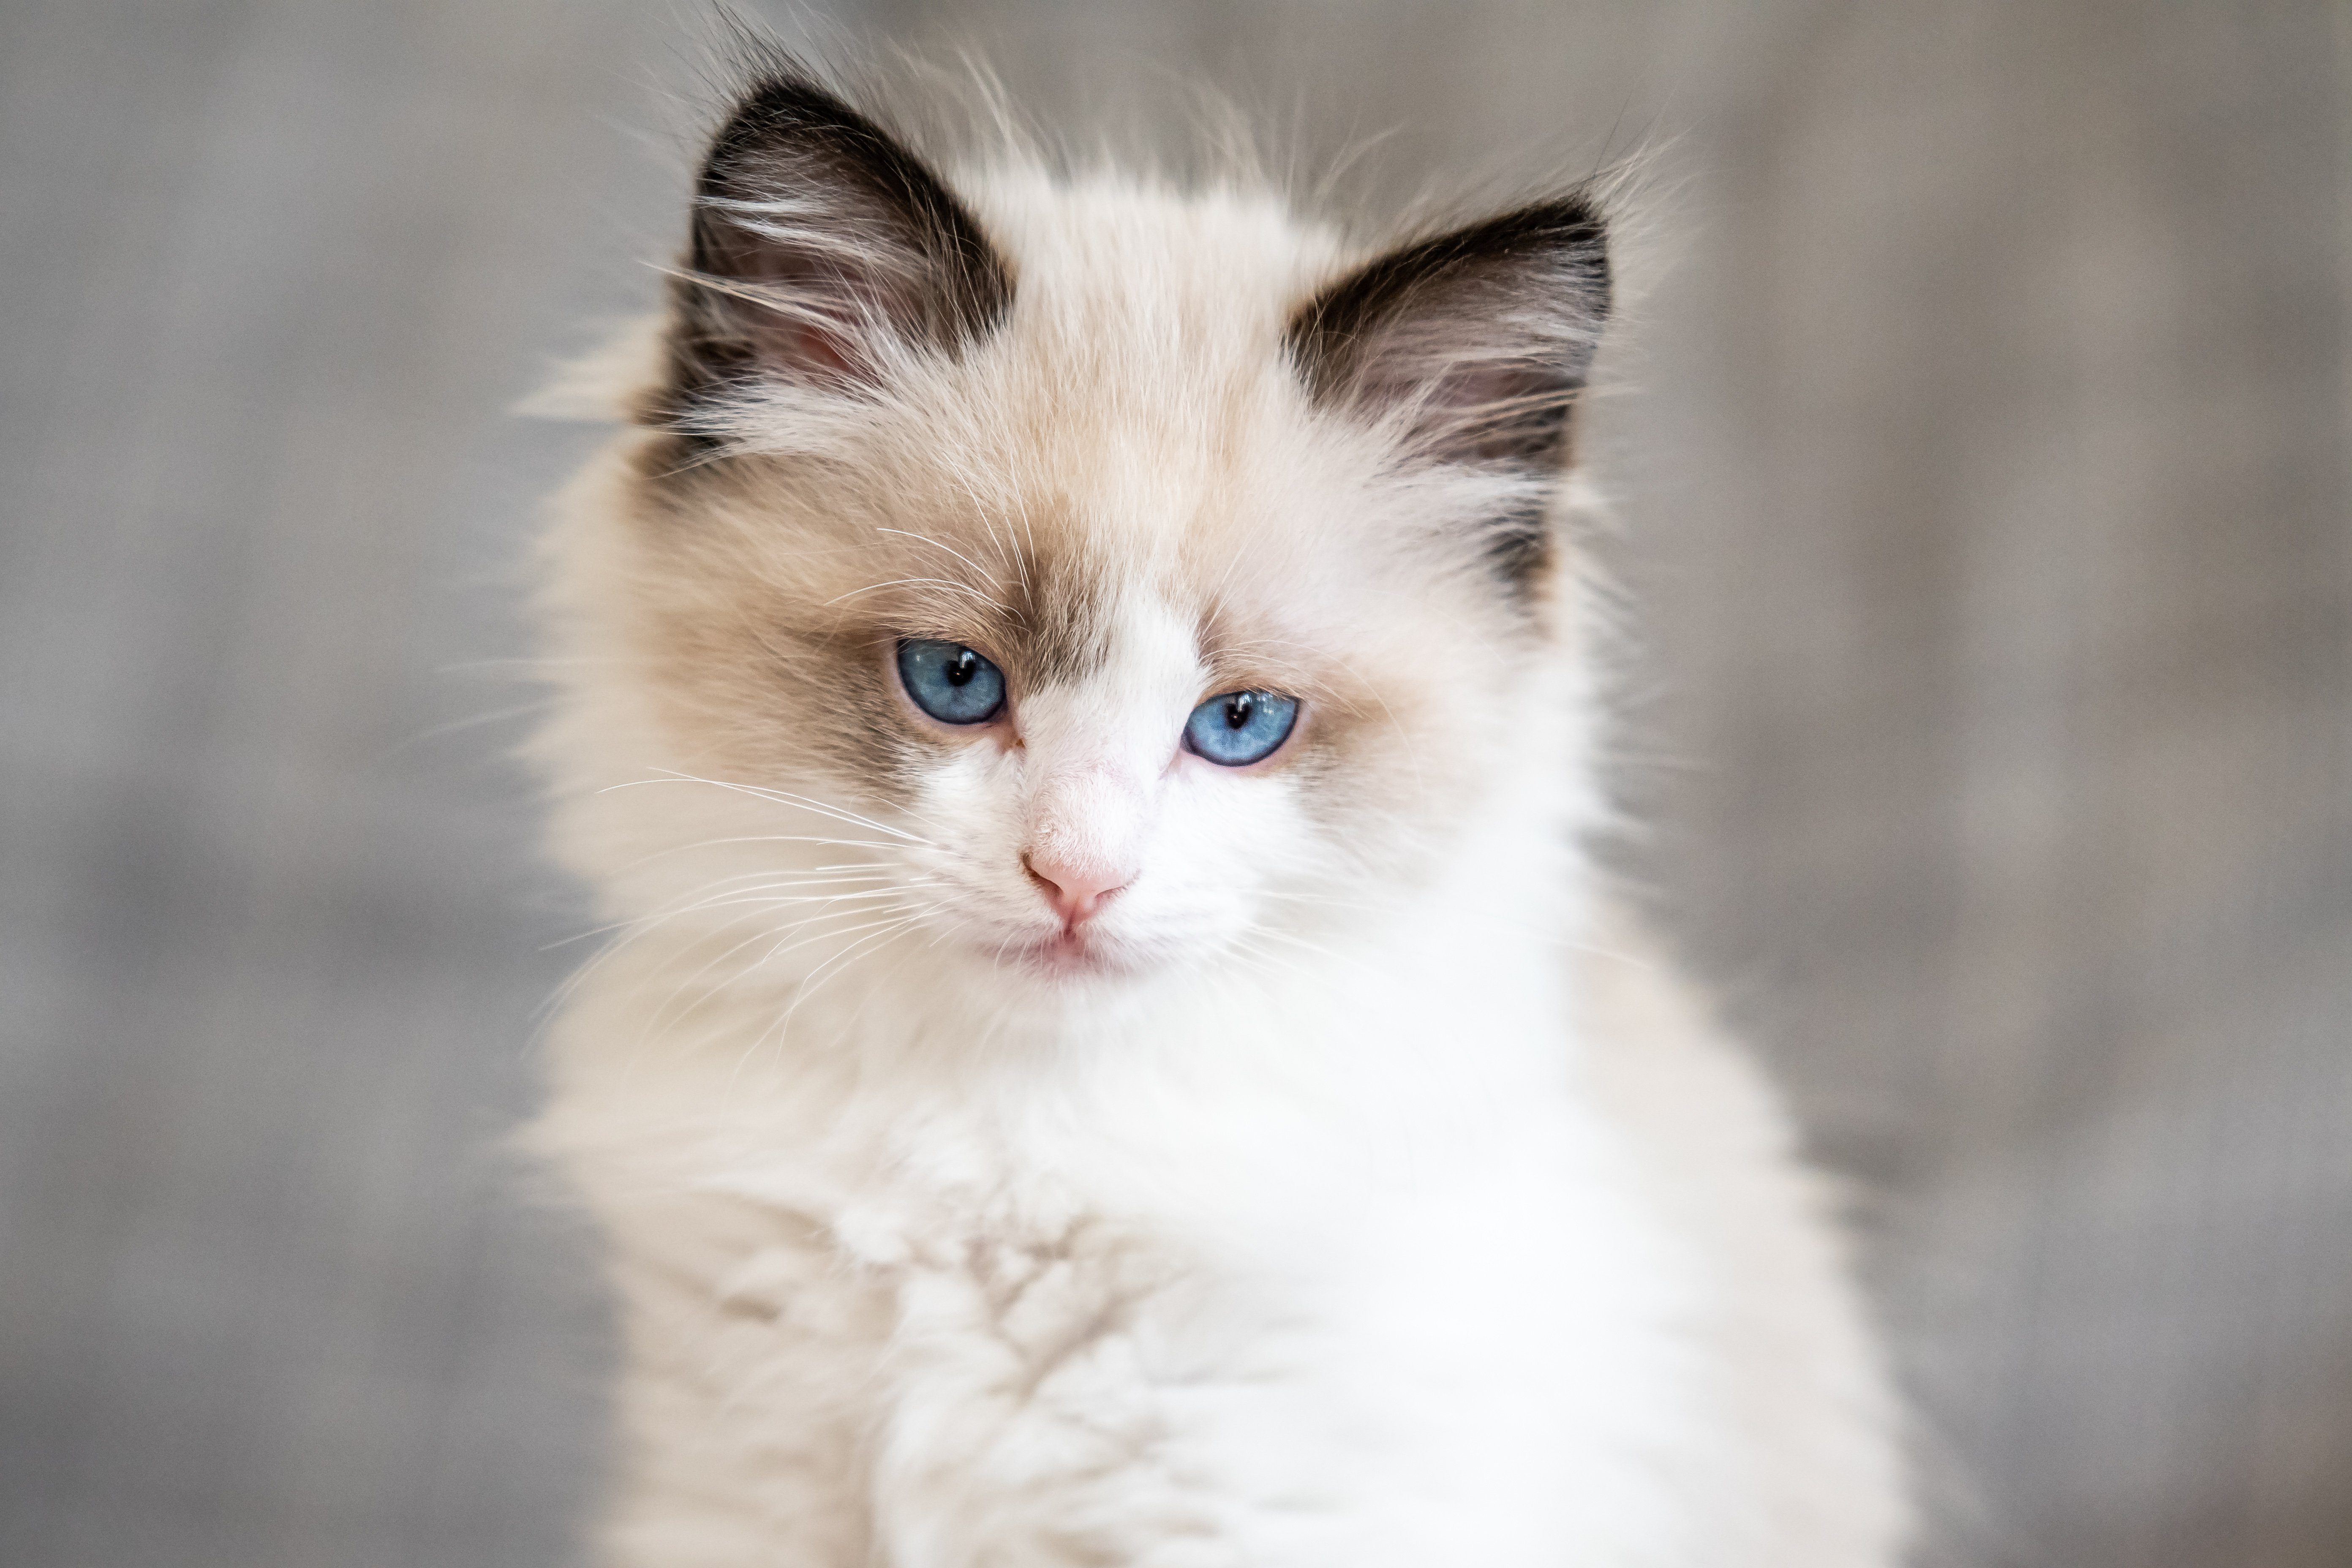 Can You Guess the Cat Breed from Its Kitten Picture